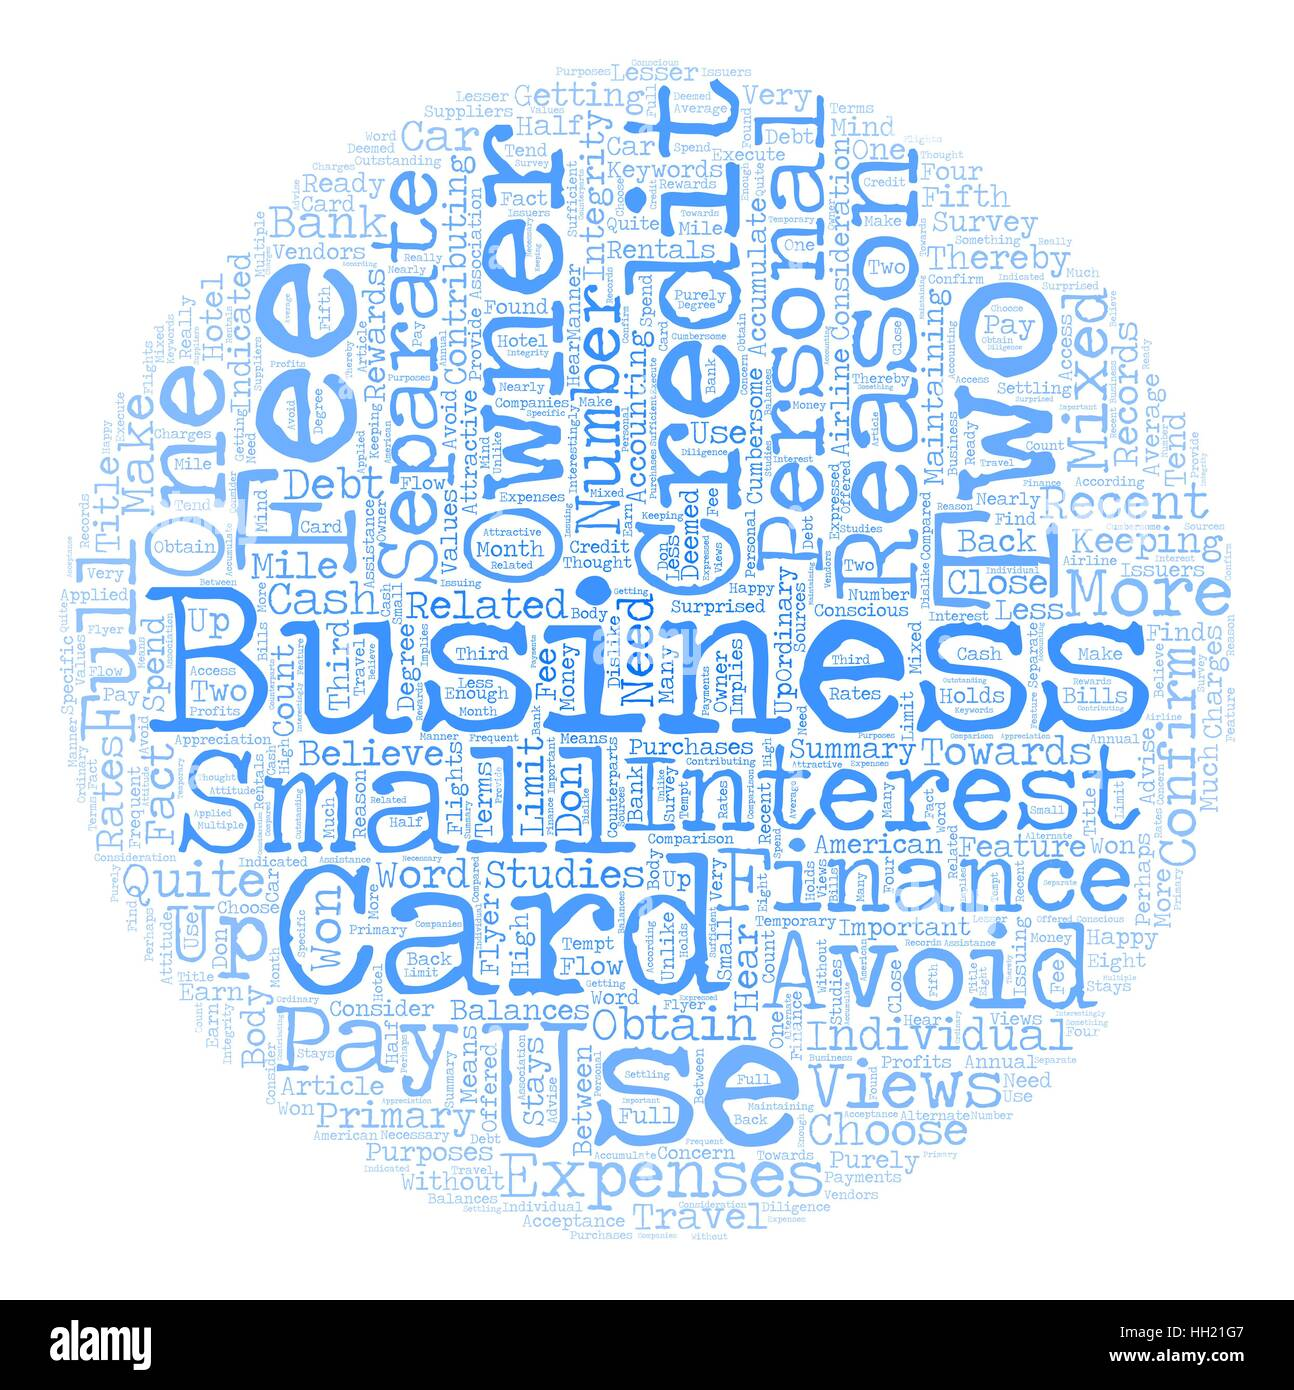 Business owners views of business credit cards text background stock business owners views of business credit cards text background wordcloud concept colourmoves Choice Image